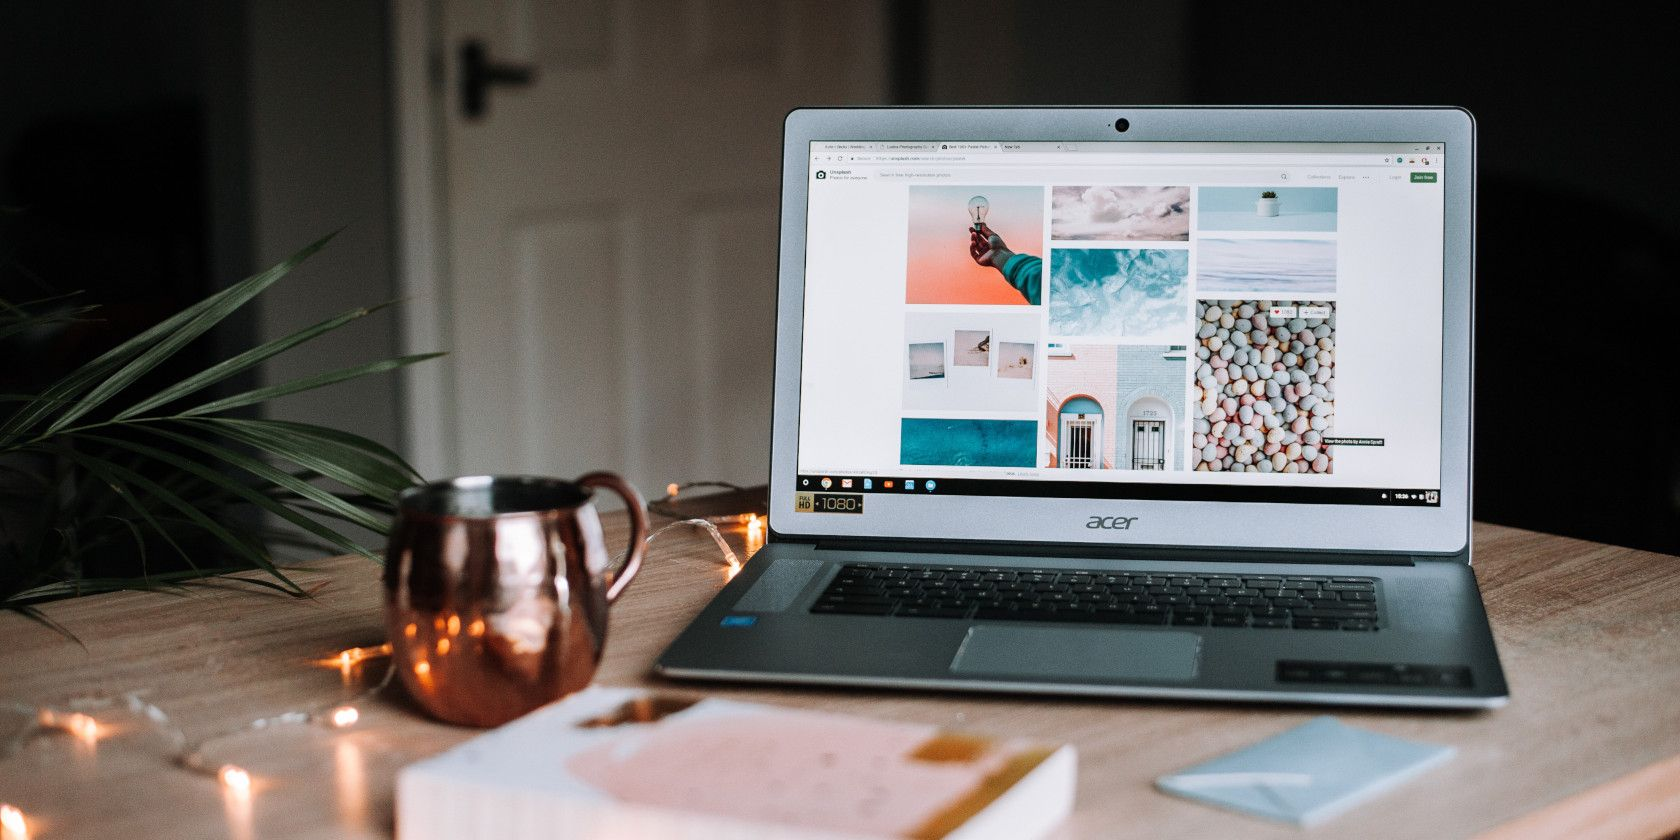 How To Use Tumblr 12 Useful Tips For Beginners